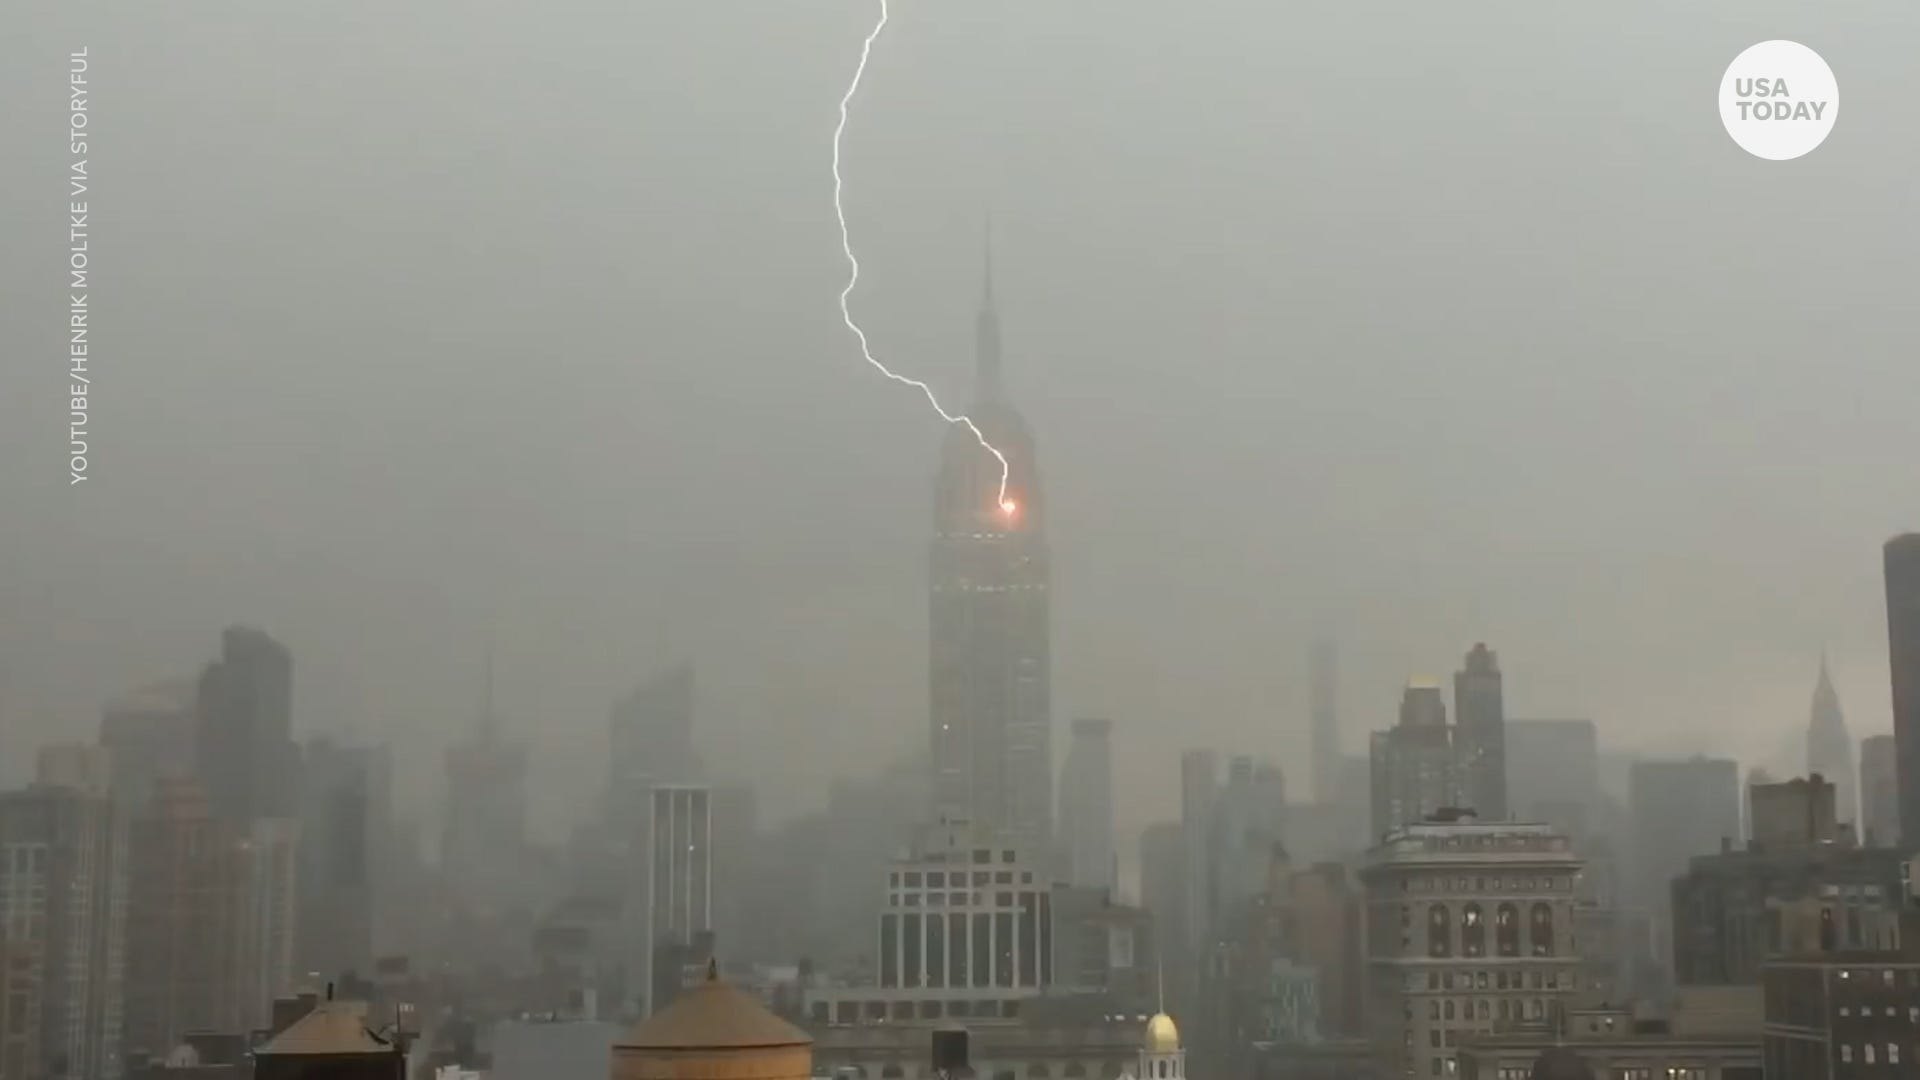 Empire State Building to the Eiffel Tower, lightning strikes international travel spots